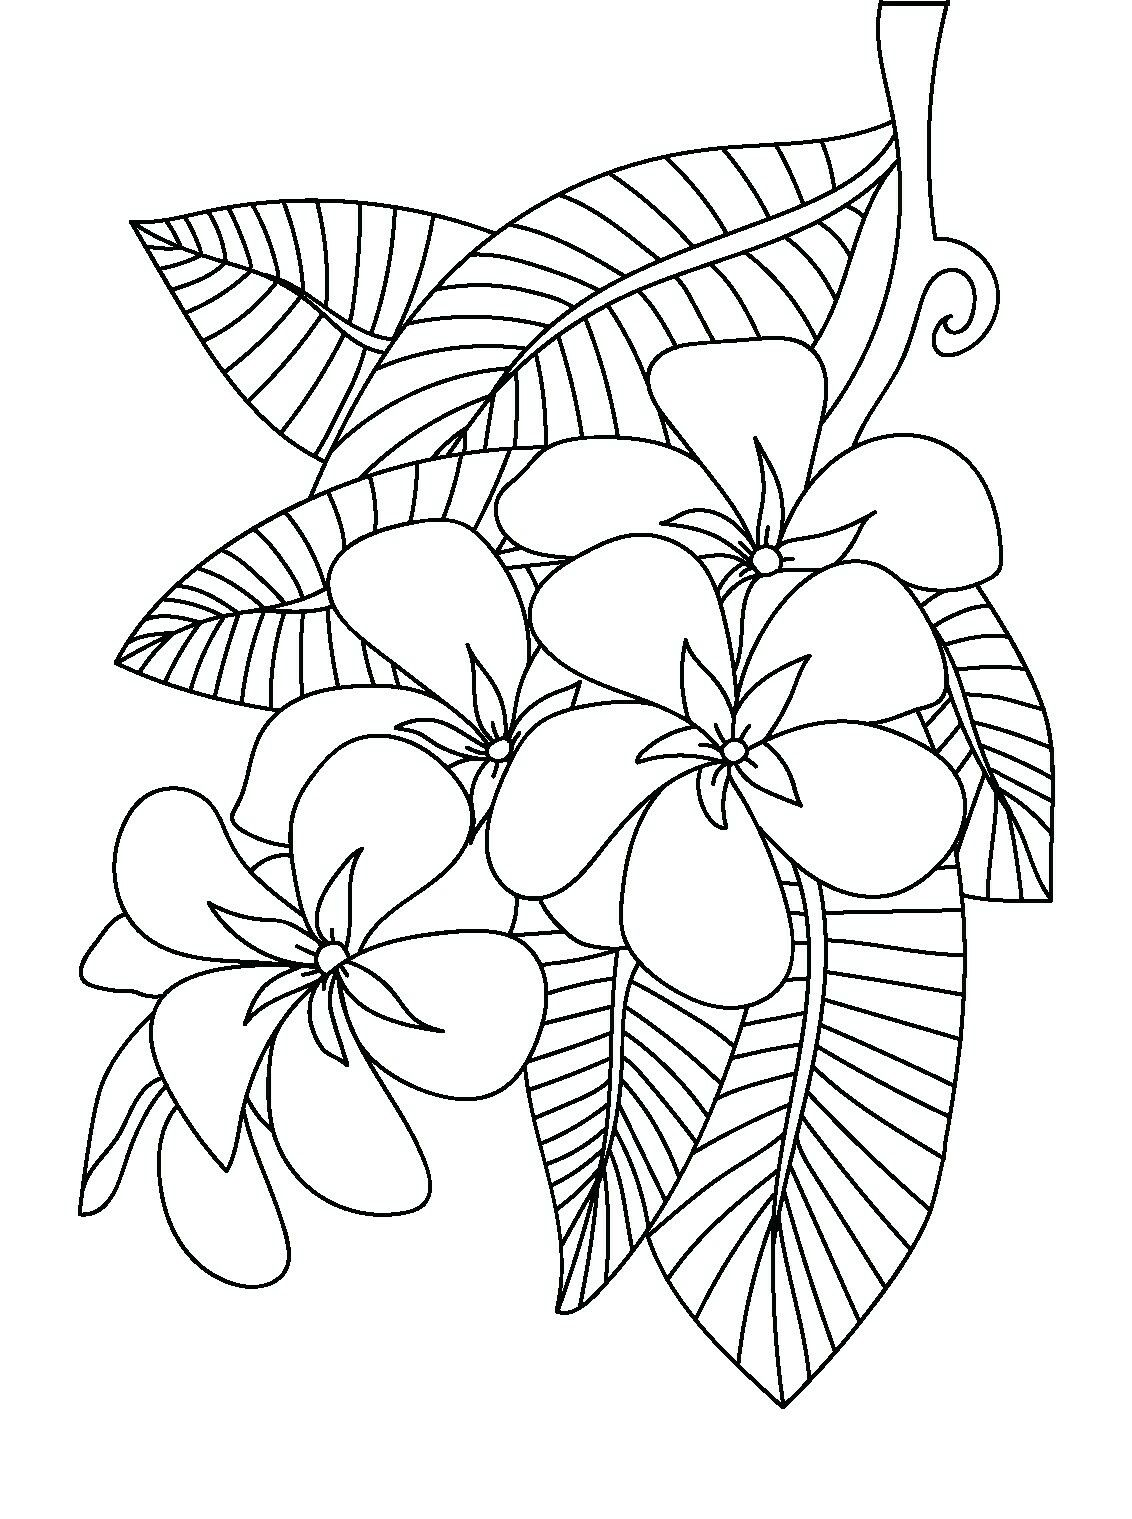 Frangipani Coloring Page Coloring Pages Inspirational